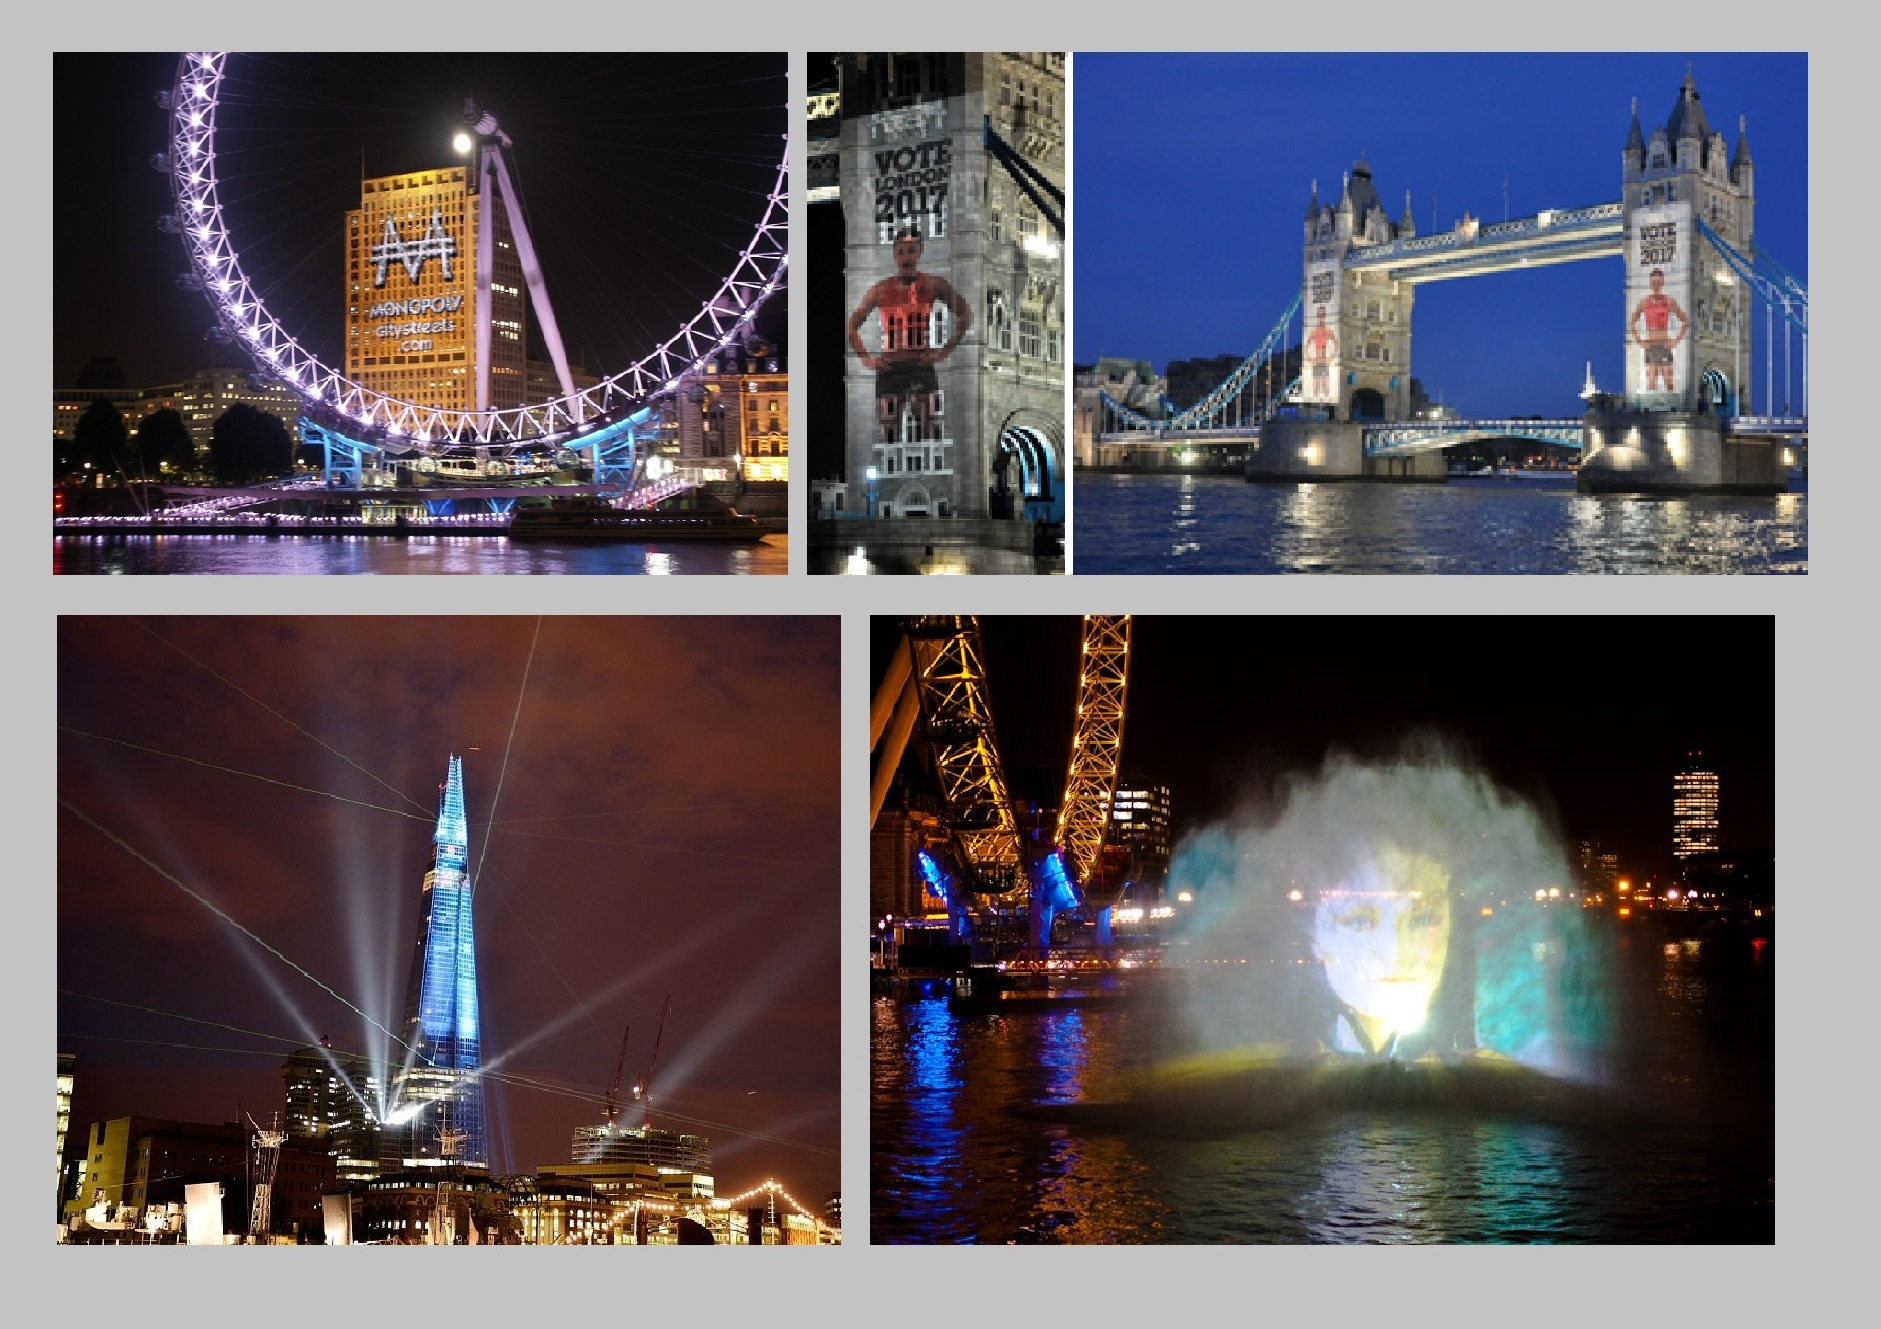 Building Projections, Searchlights and Water Screen Projection London